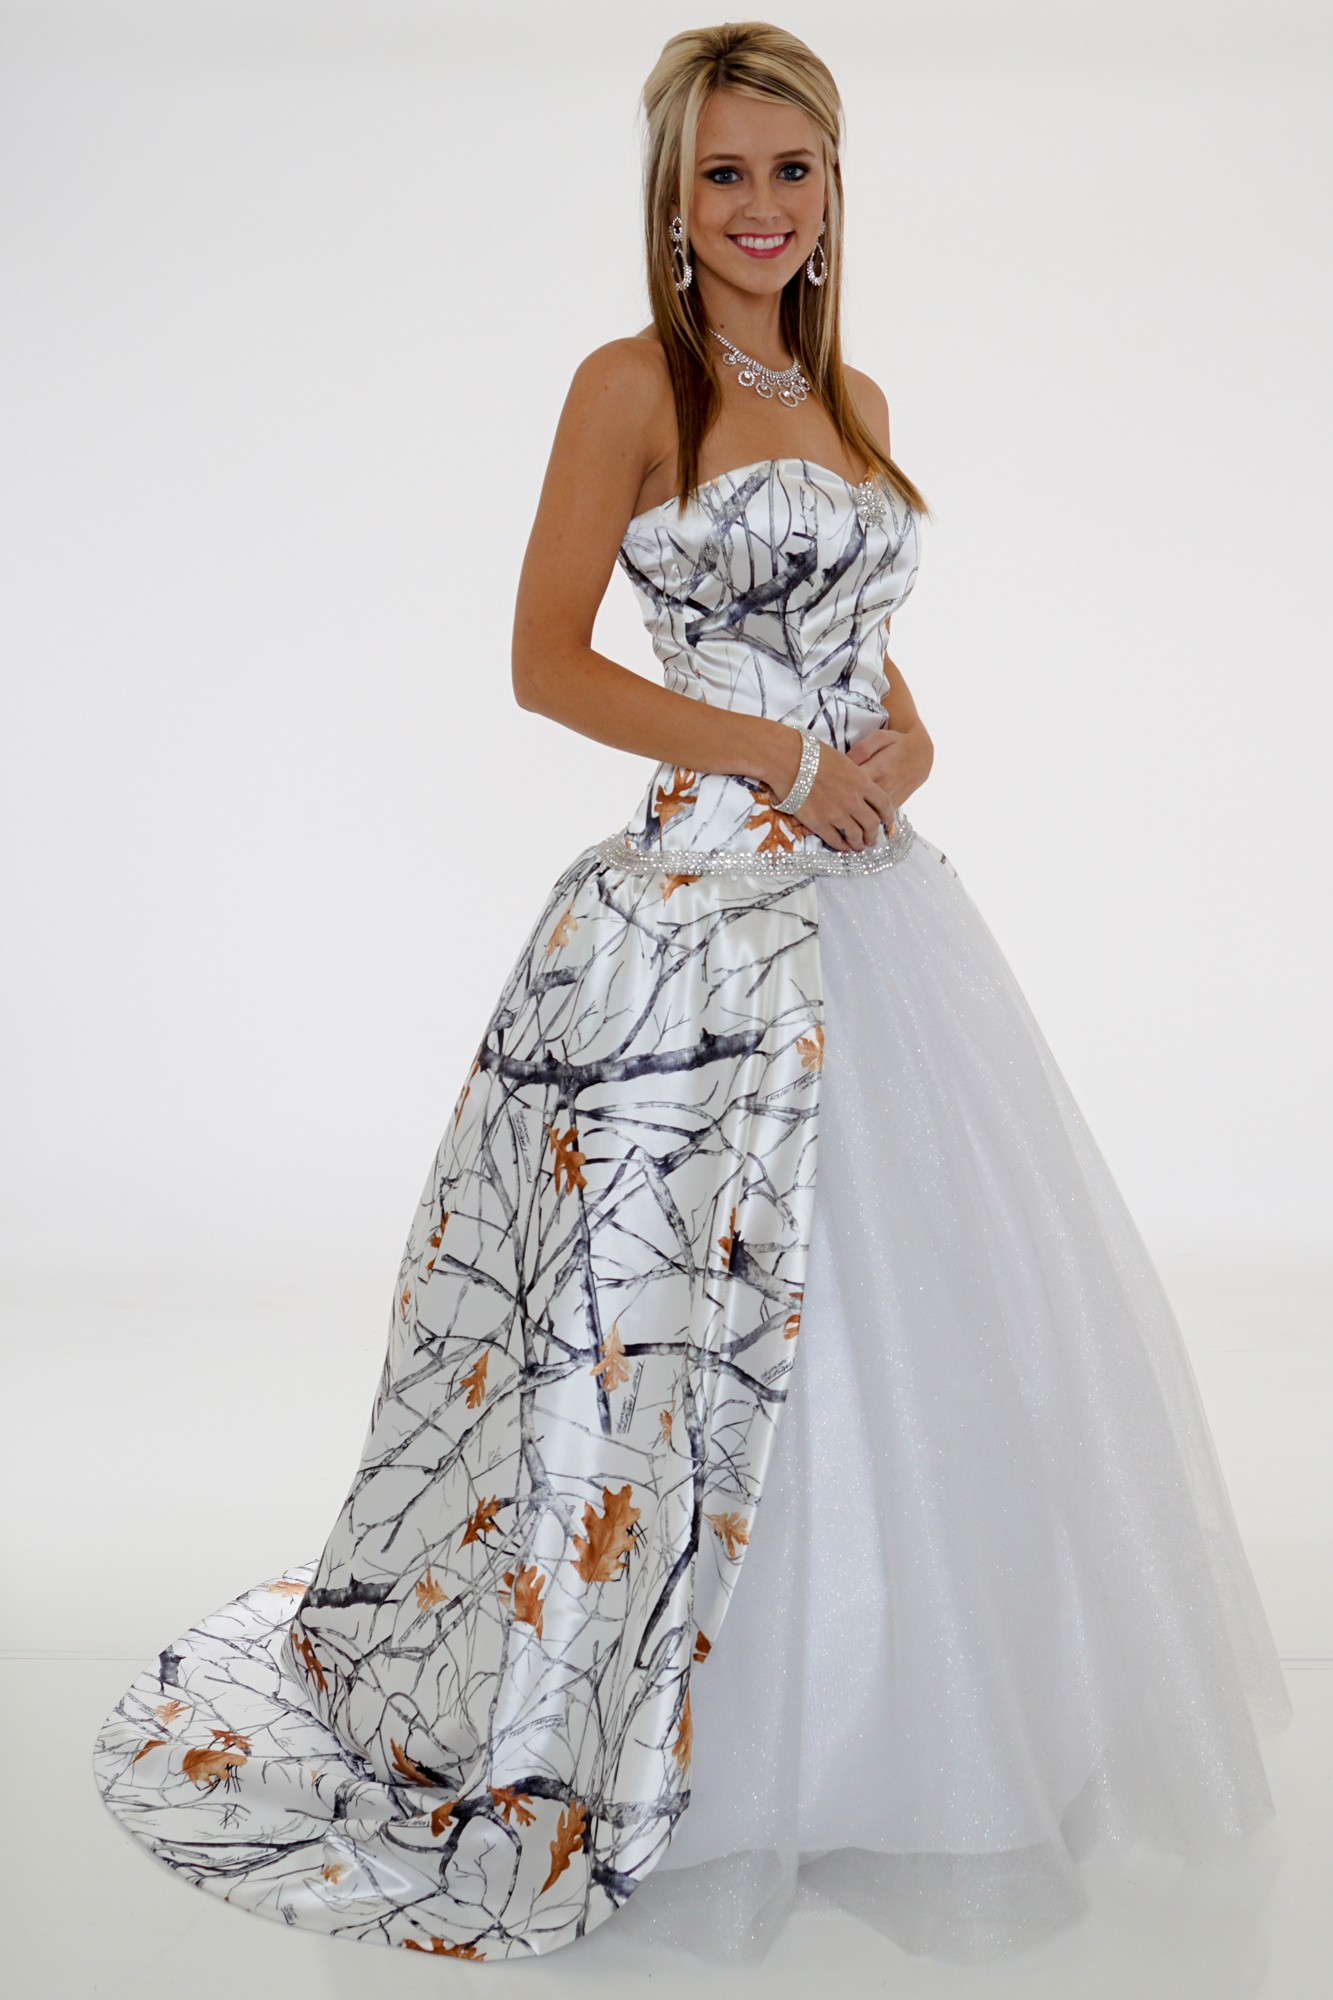 camouflage wedding dresses pictures photo - 1